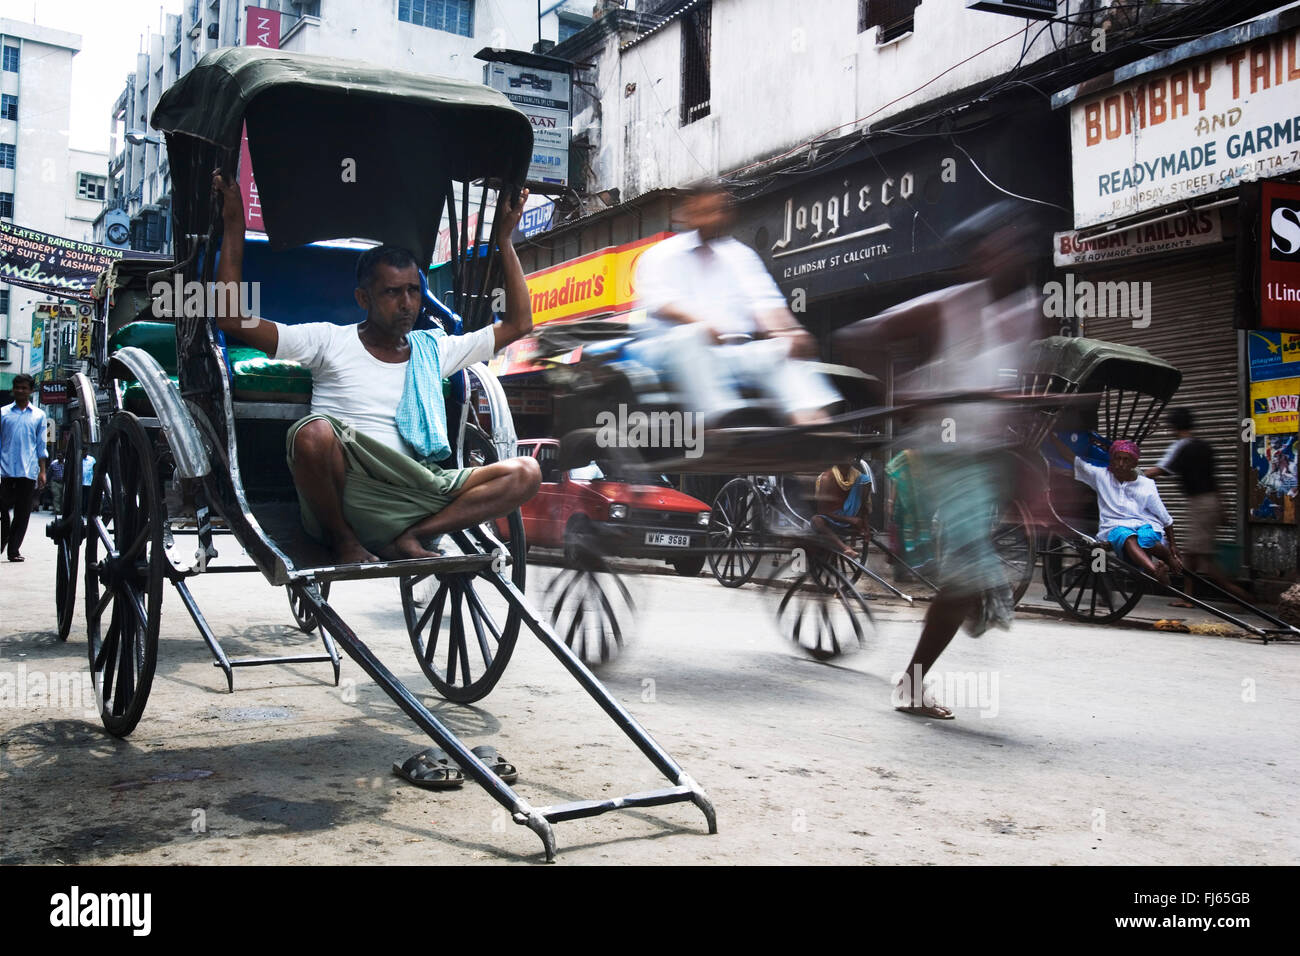 rickshaw drivers, India, Kalkutta - Stock Image